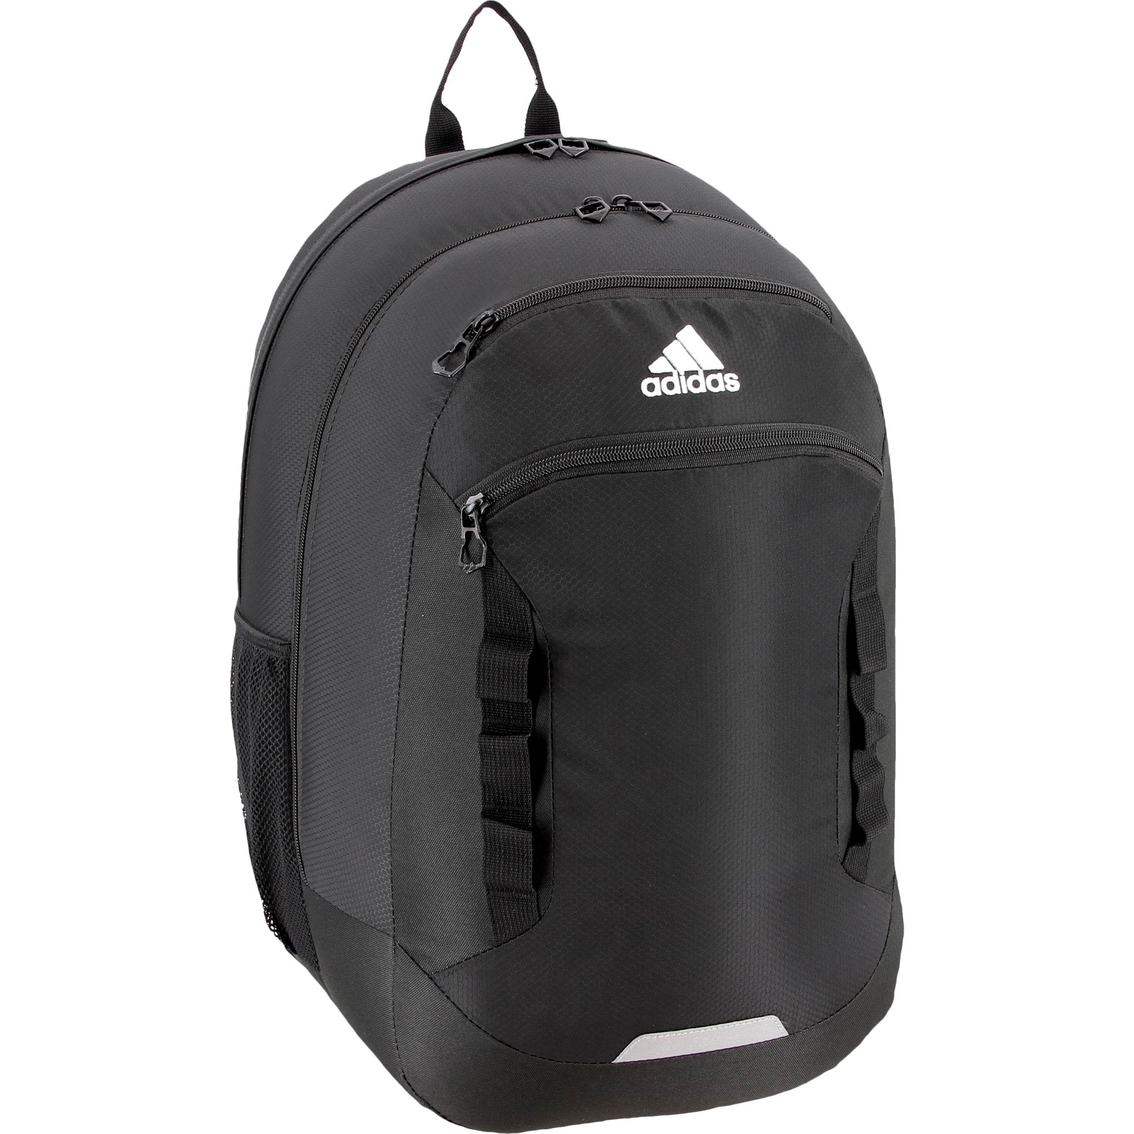 377a28e1f000 Adidas Excel Iii Backpack